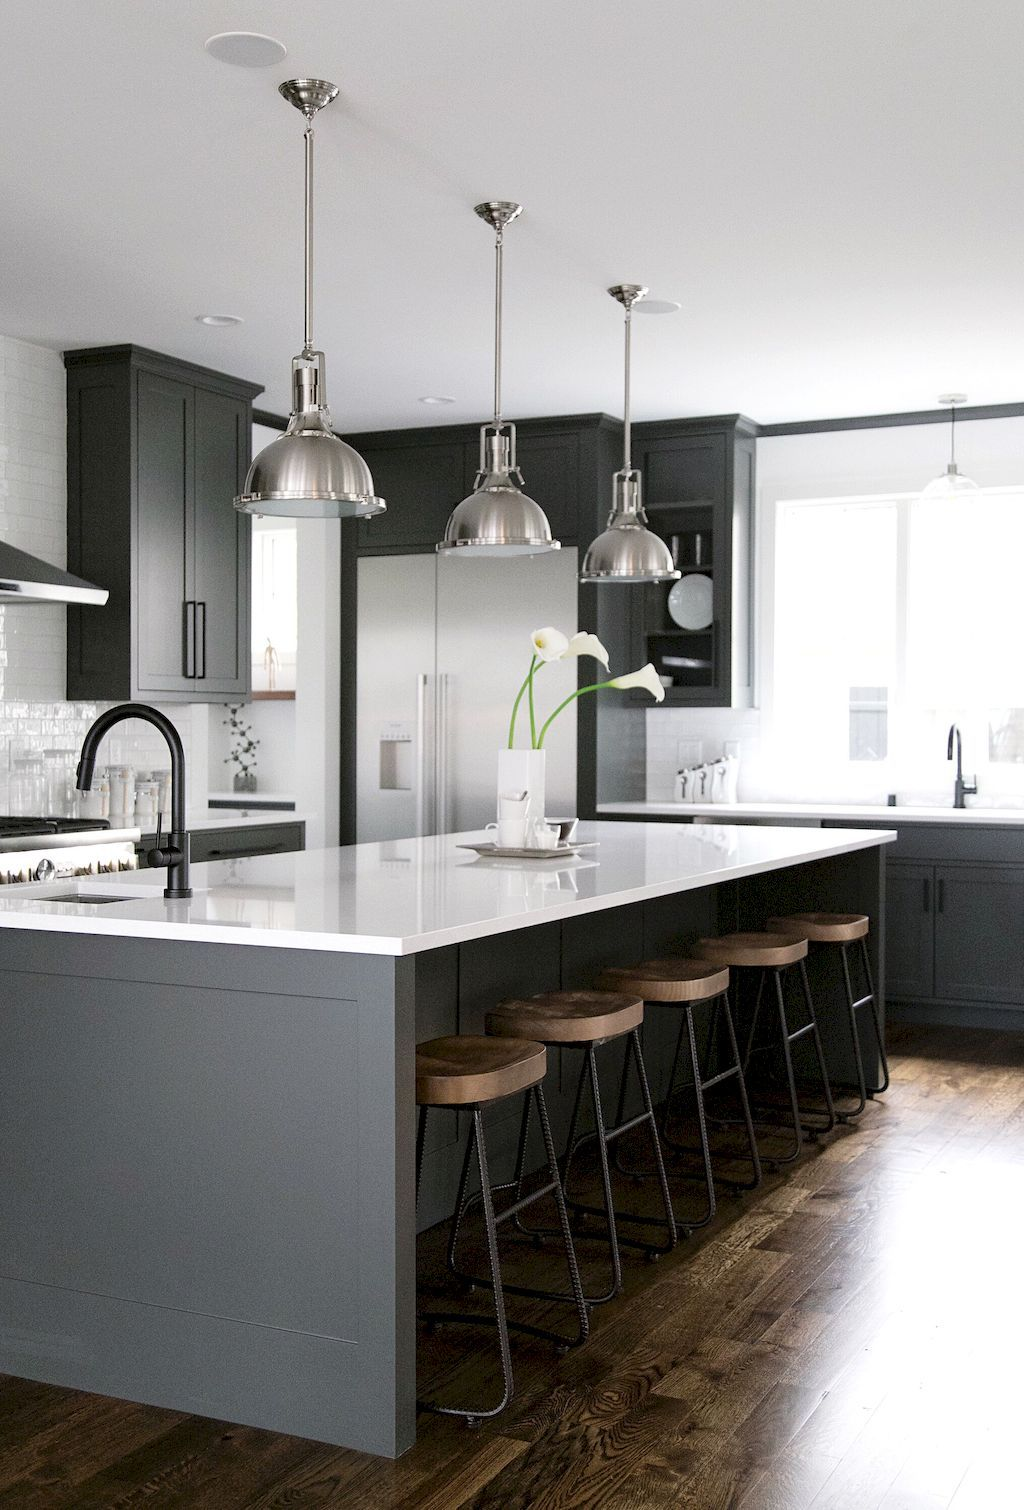 awesome black and white kitchen floor tiles kitchen designs rh pinterest com